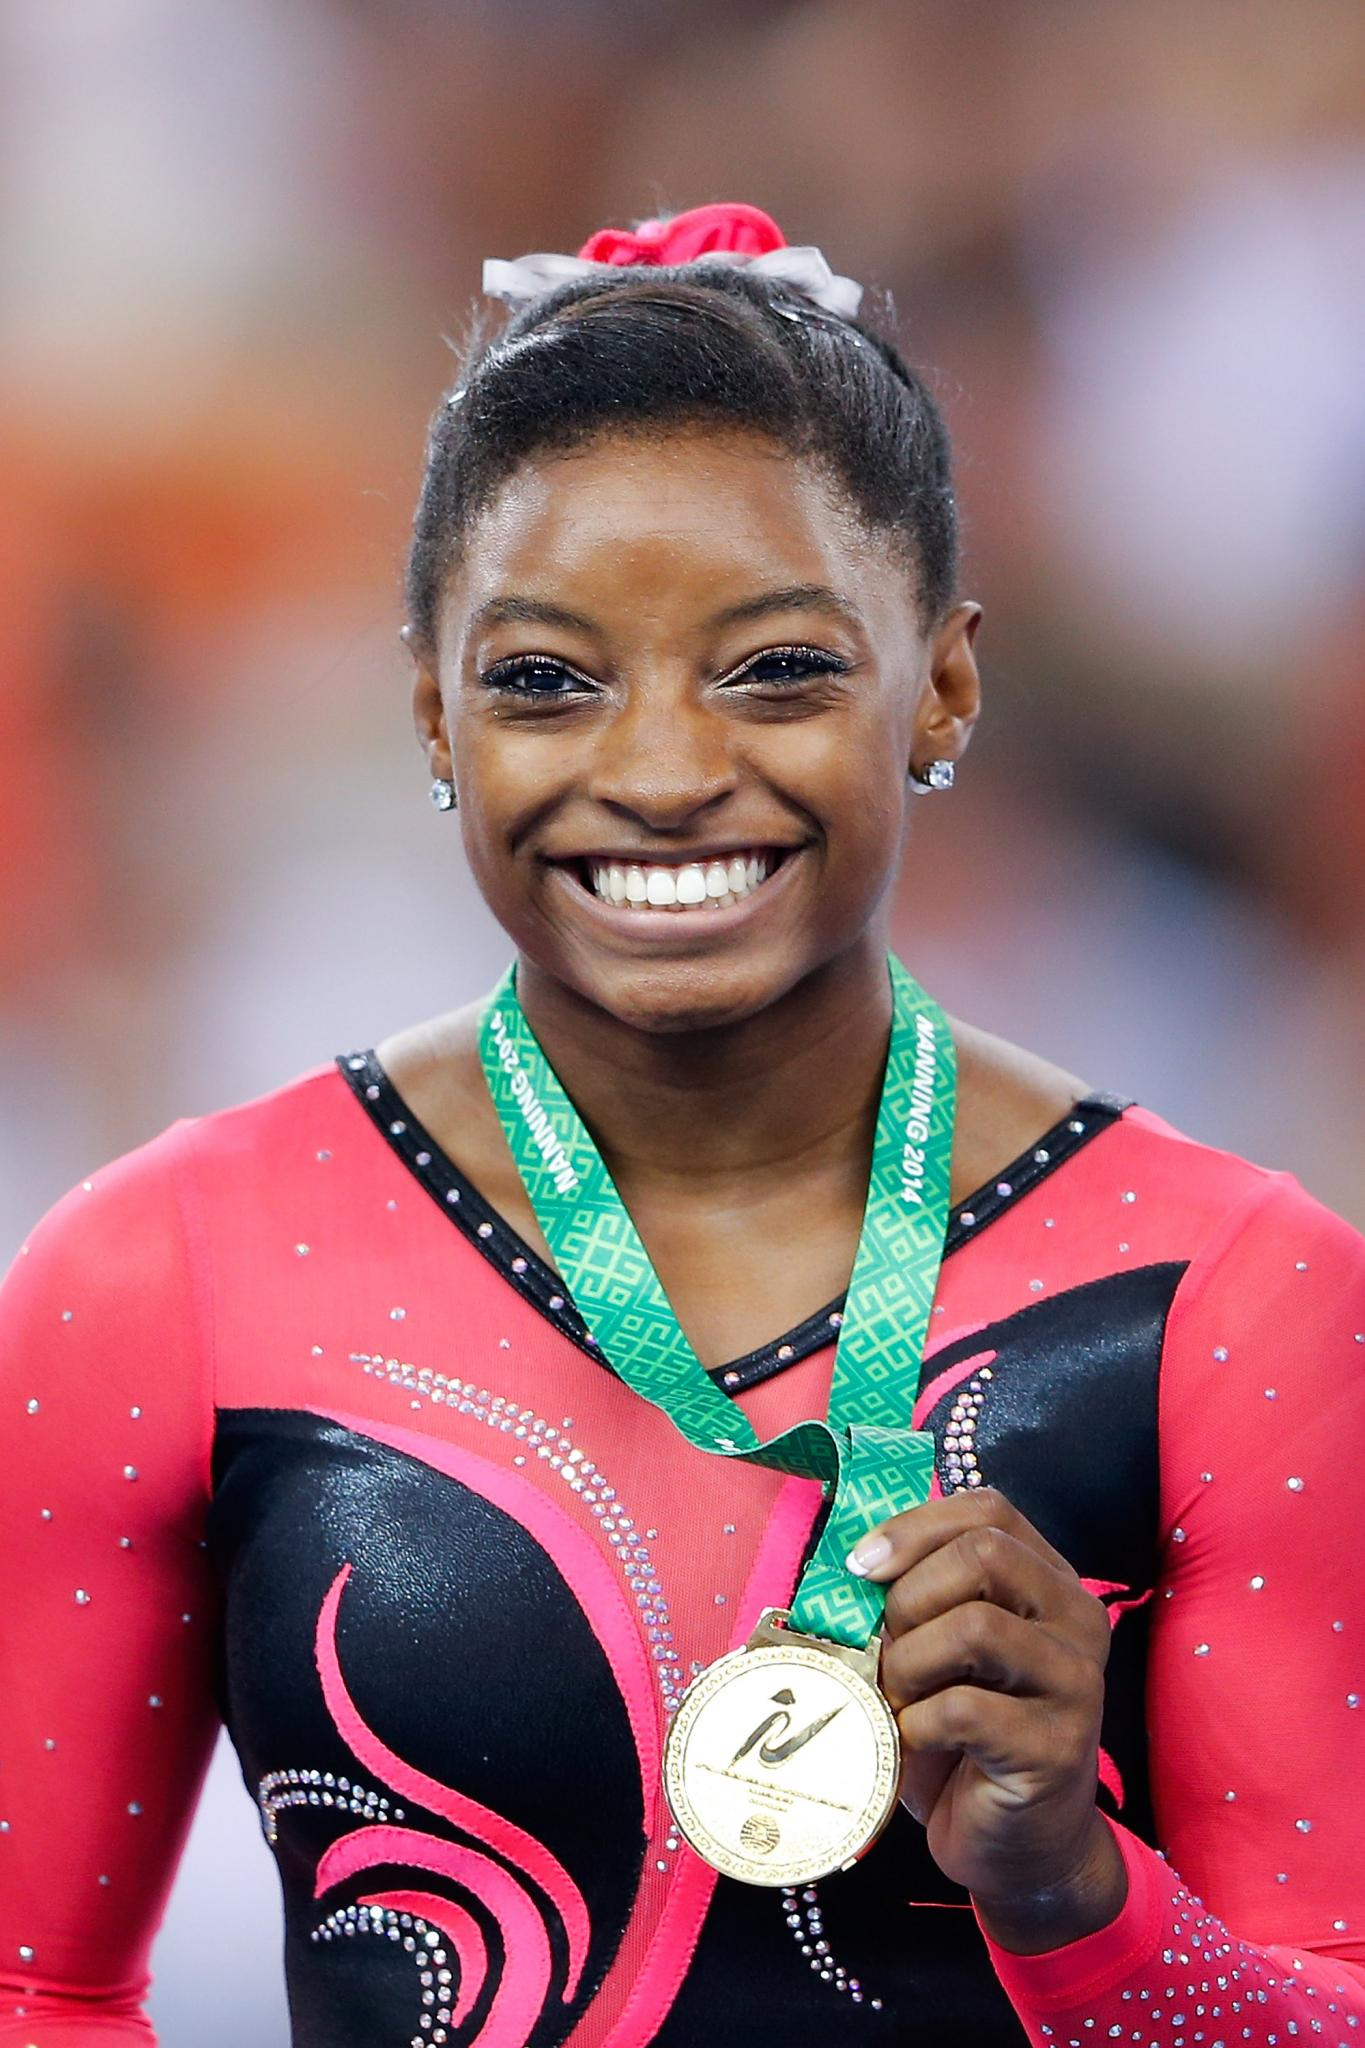 Meet Simone Biles, The 'Queen Bee' of the World Gymnastics Championship